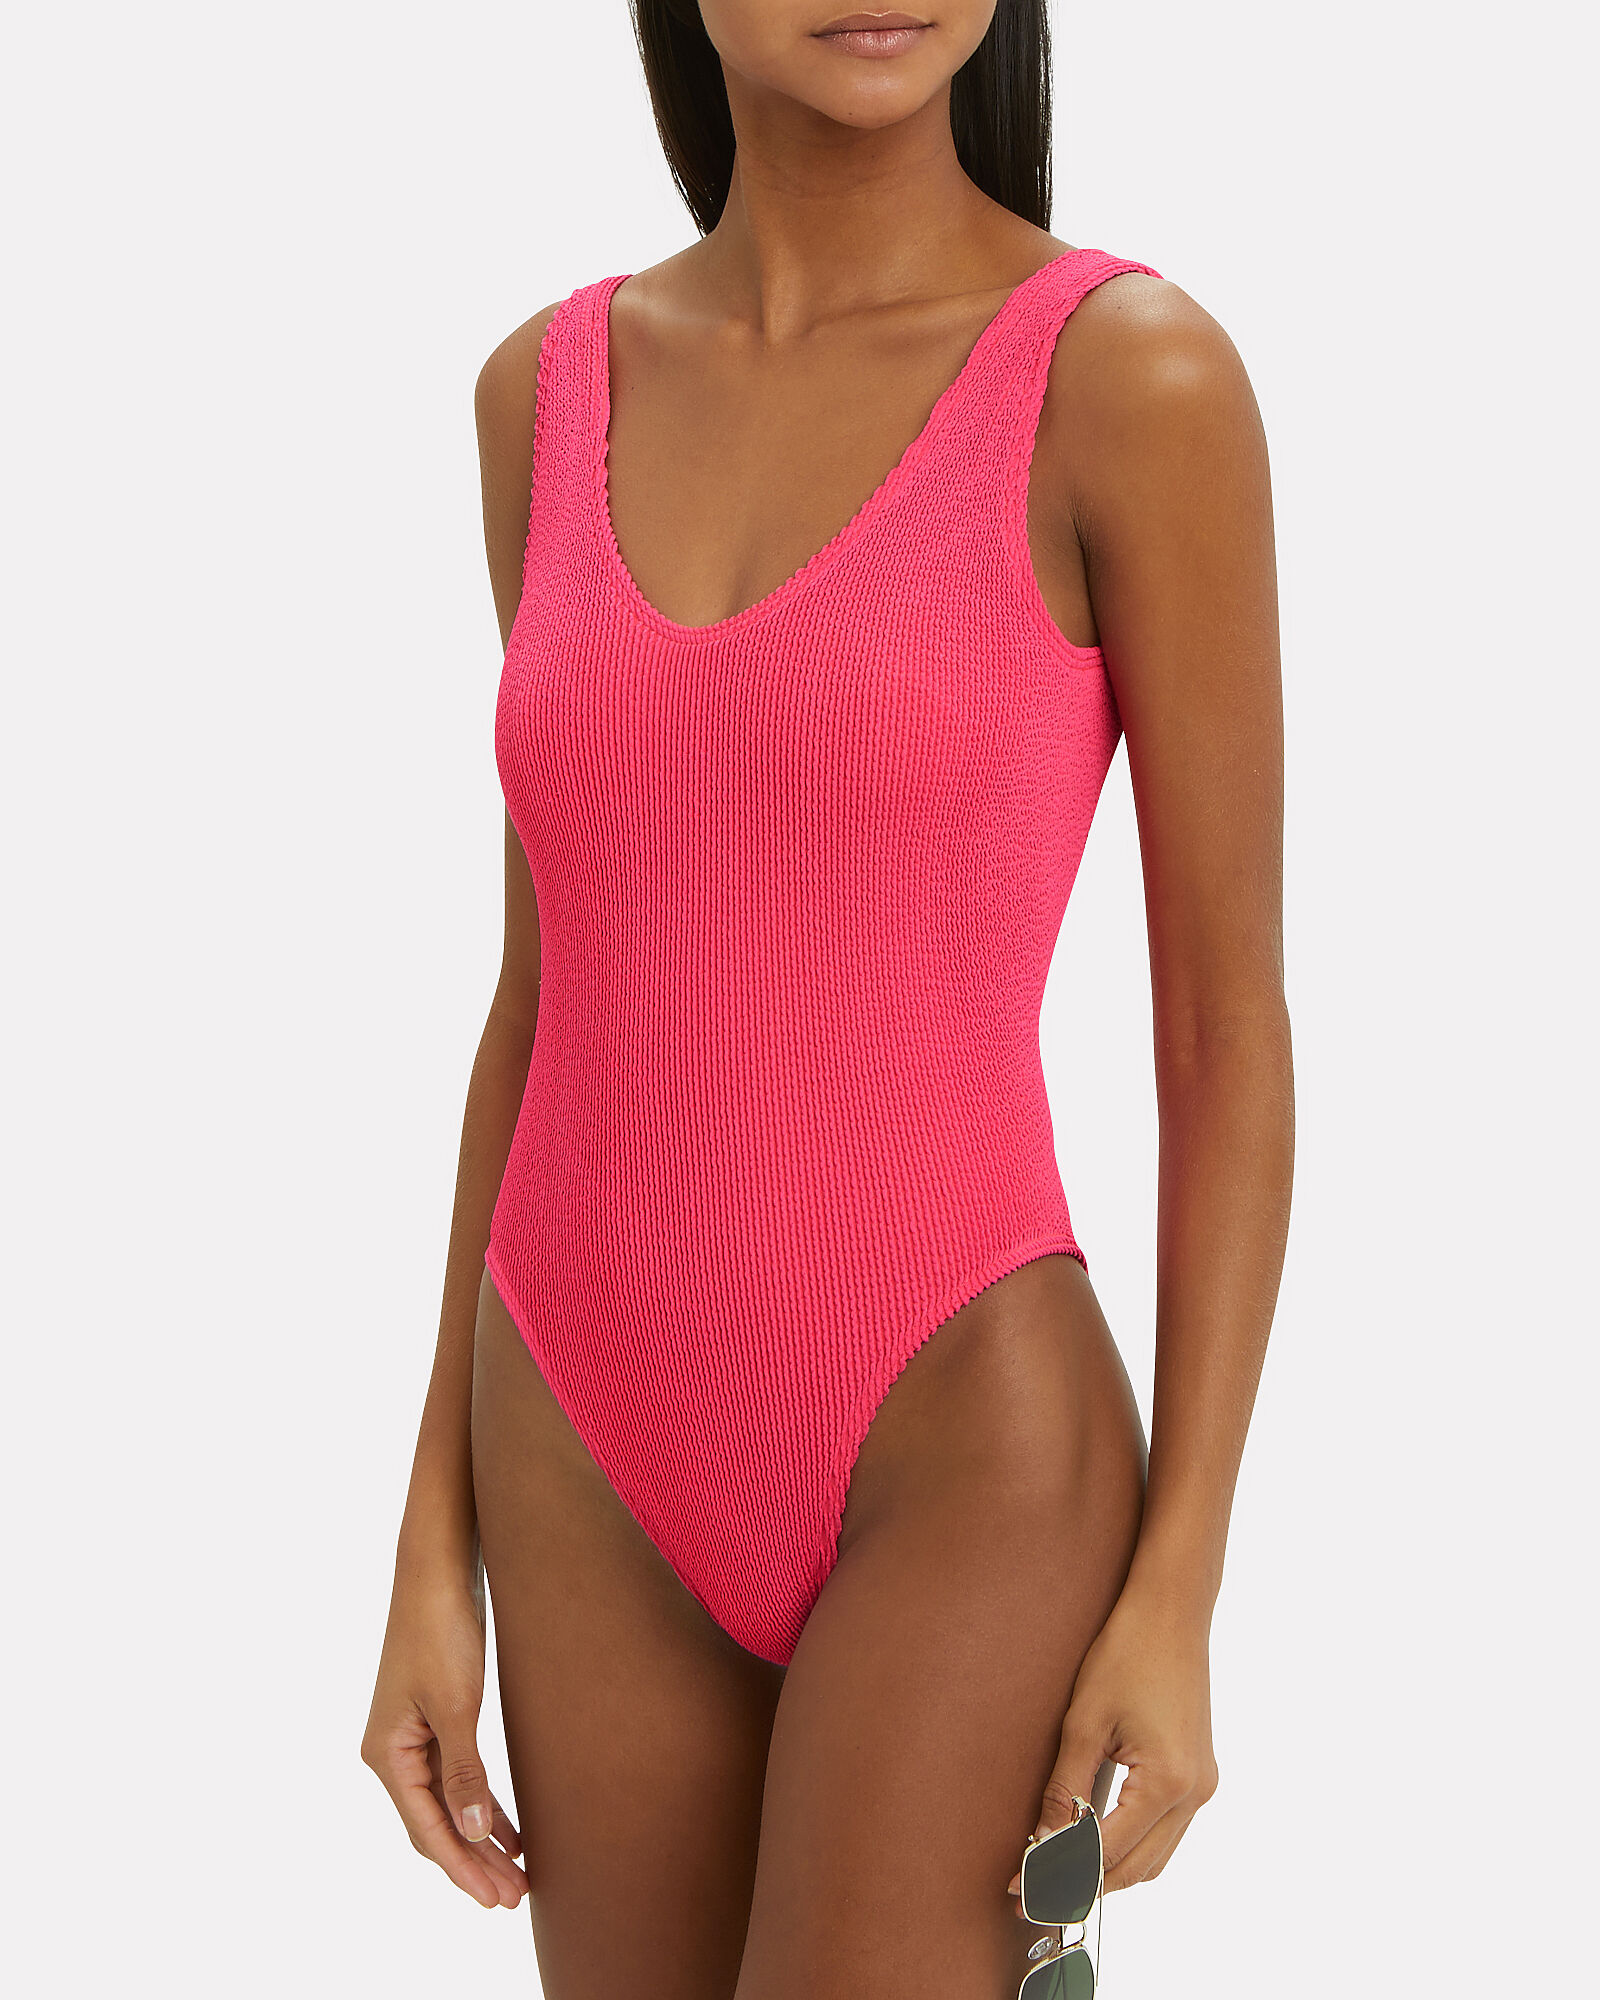 Mara One Piece Swimsuit, PINK, hi-res